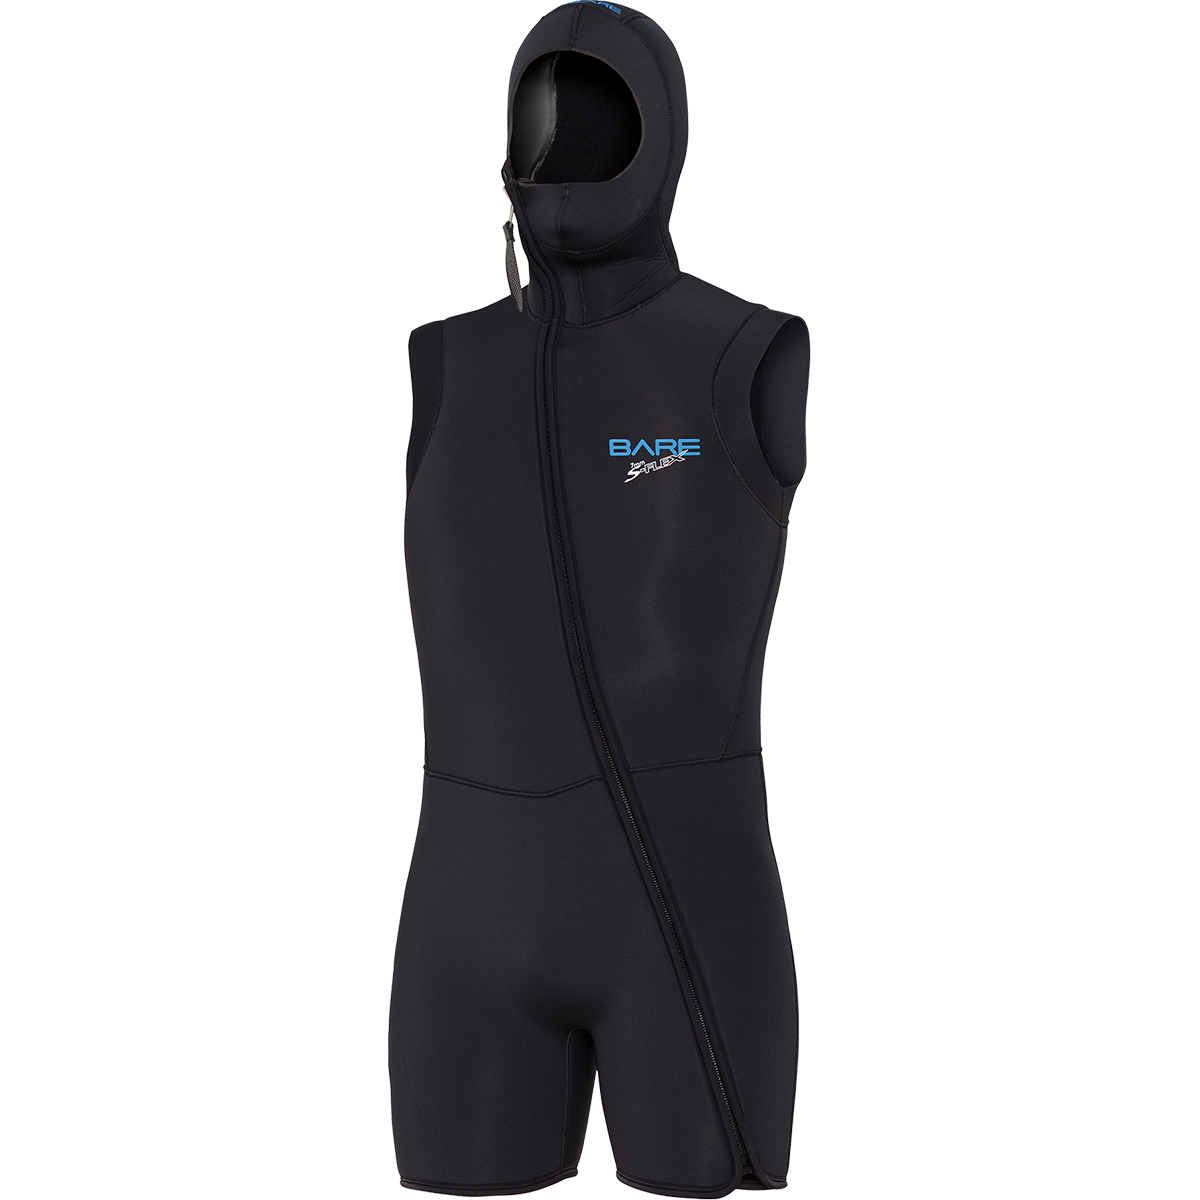 7mm  Step-in Hooded Vest